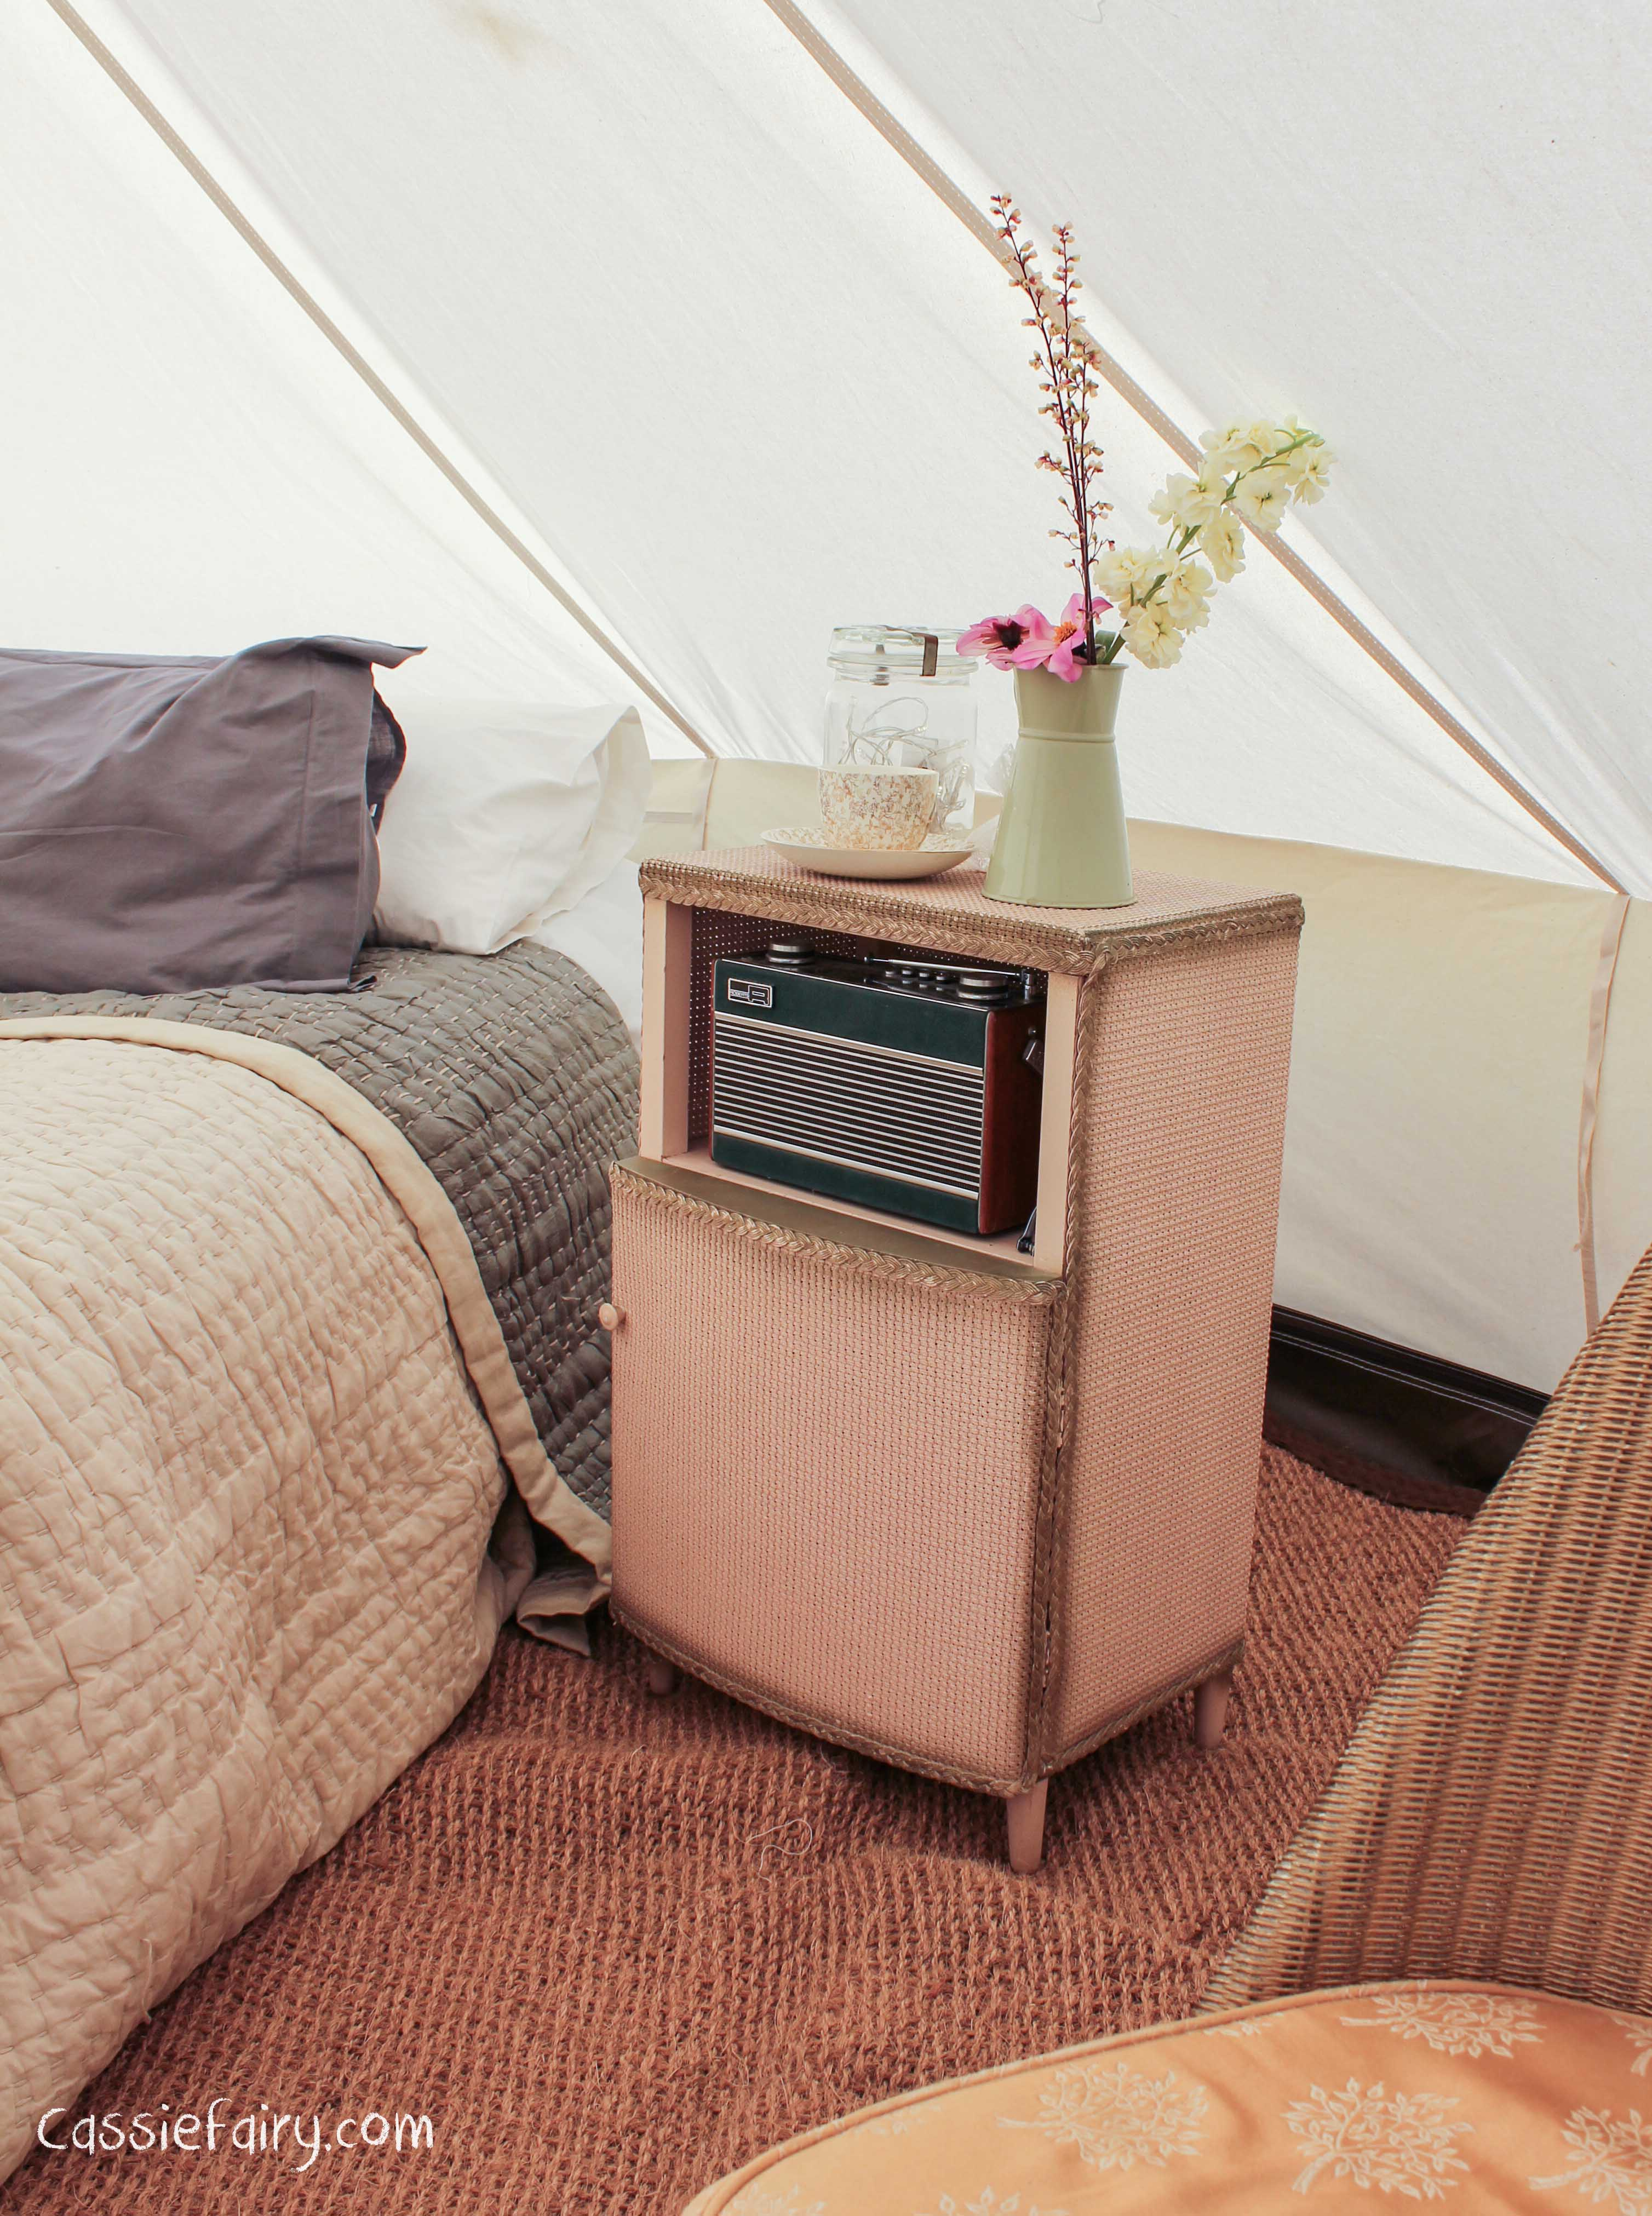 Glamping festival ideas bell tents 4 for Glamping ideas diy